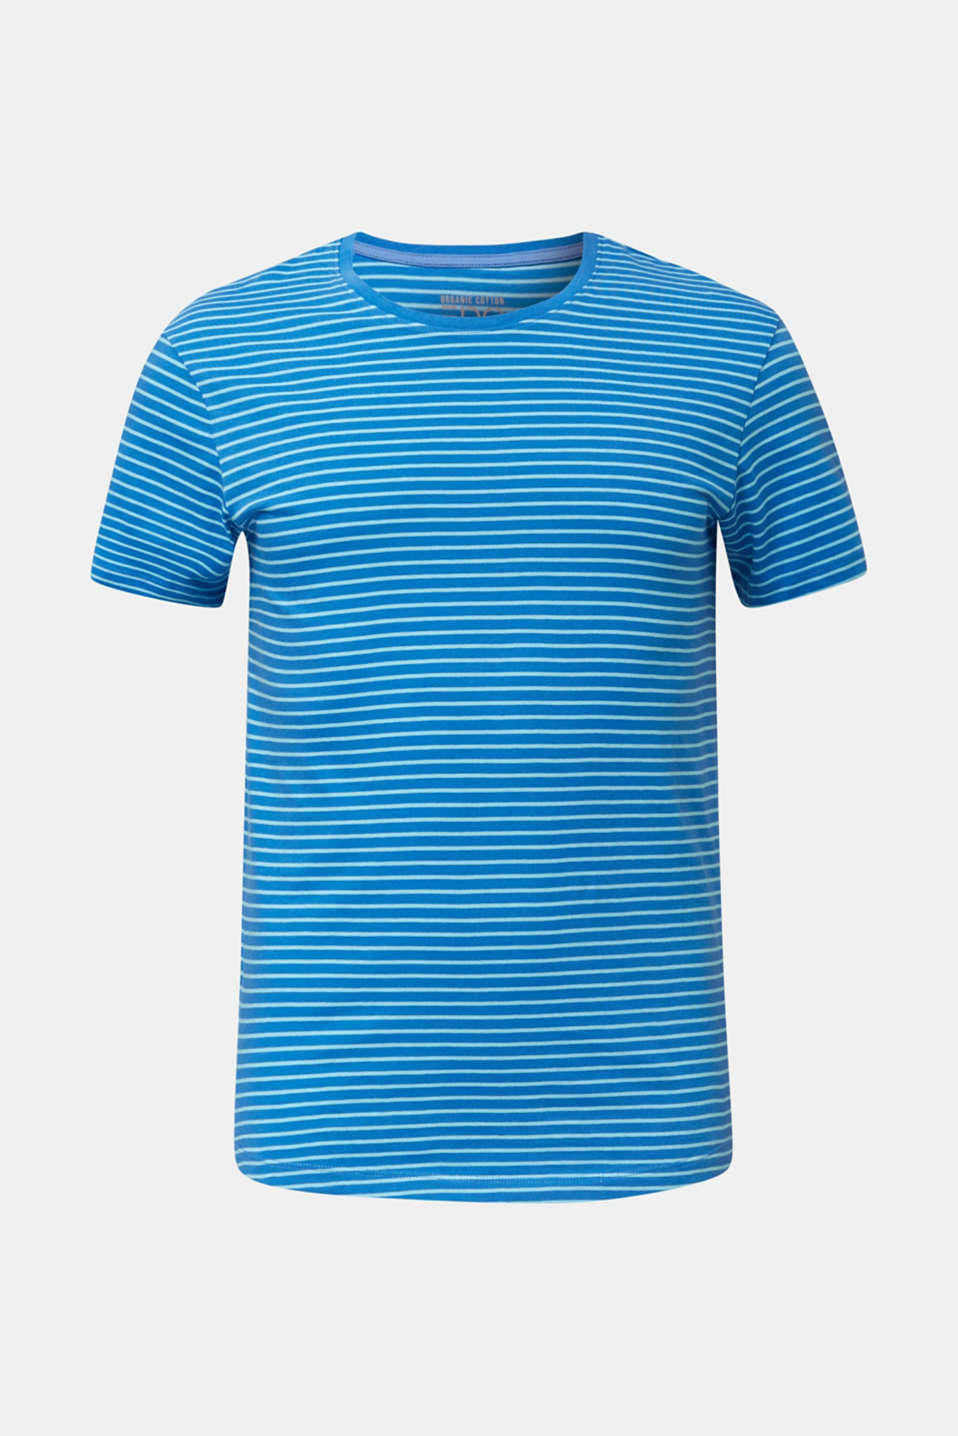 Jersey T-shirt with stripes, 100% cotton, BLUE 3, detail image number 7